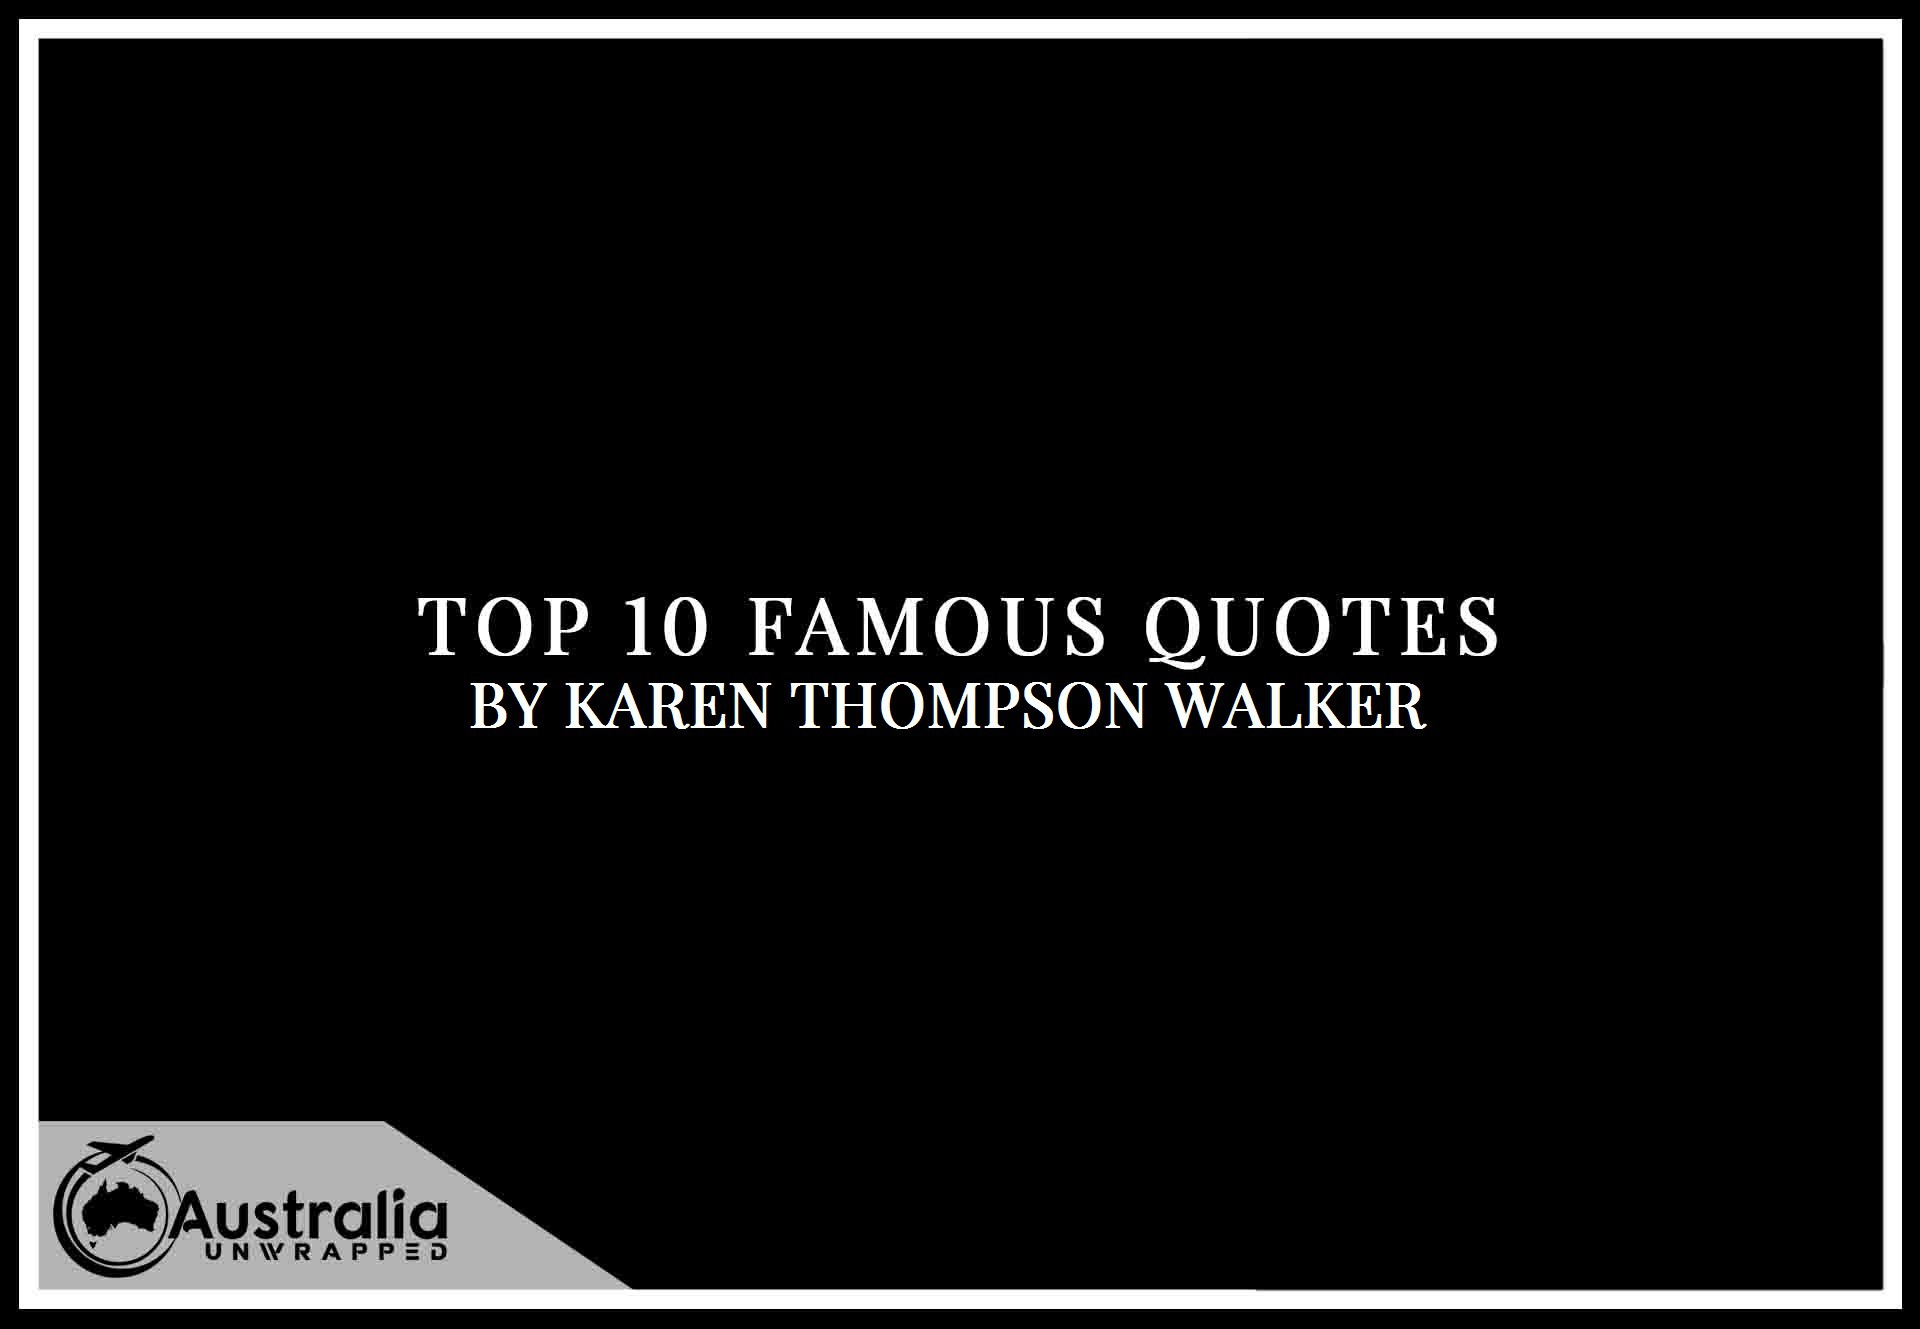 Karen Thompson Walker's Top 10 Popular and Famous Quotes